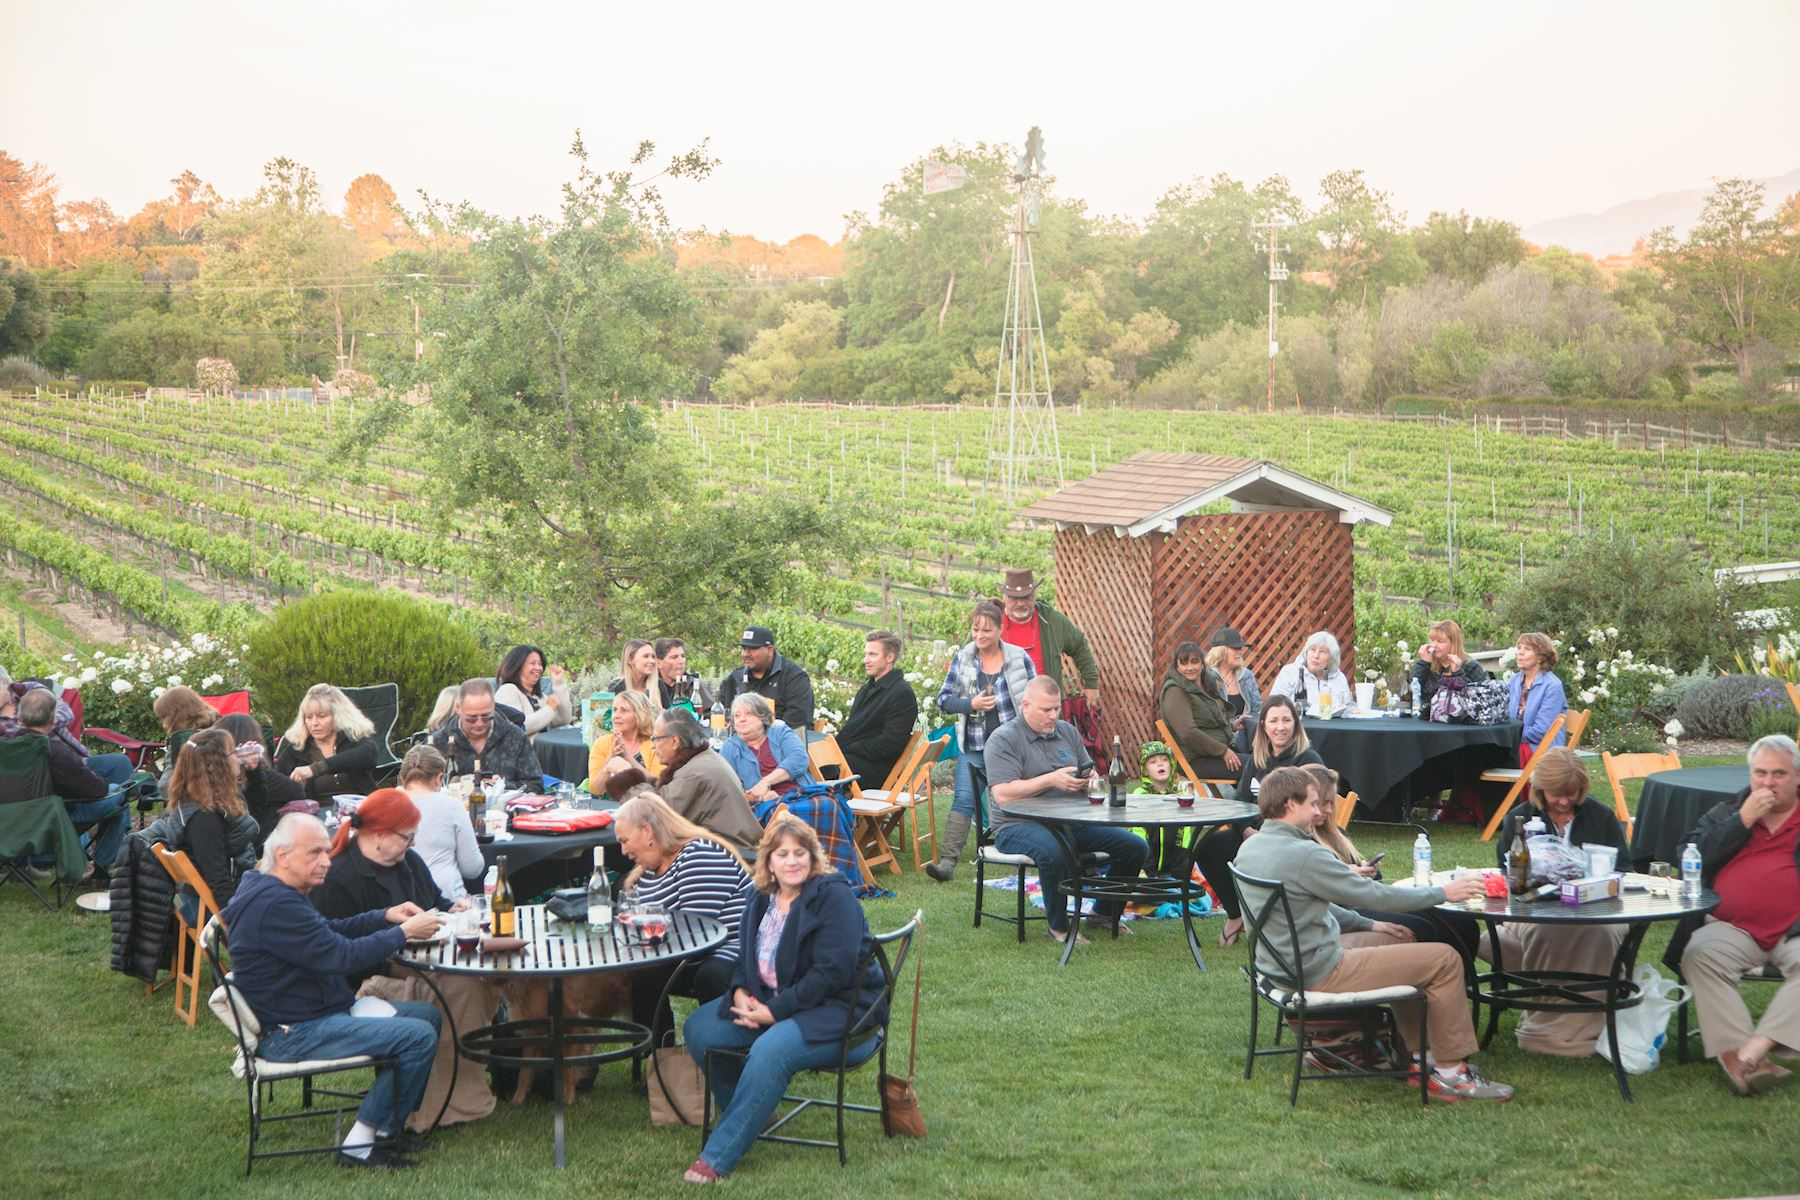 Event attendees enjoying the evening